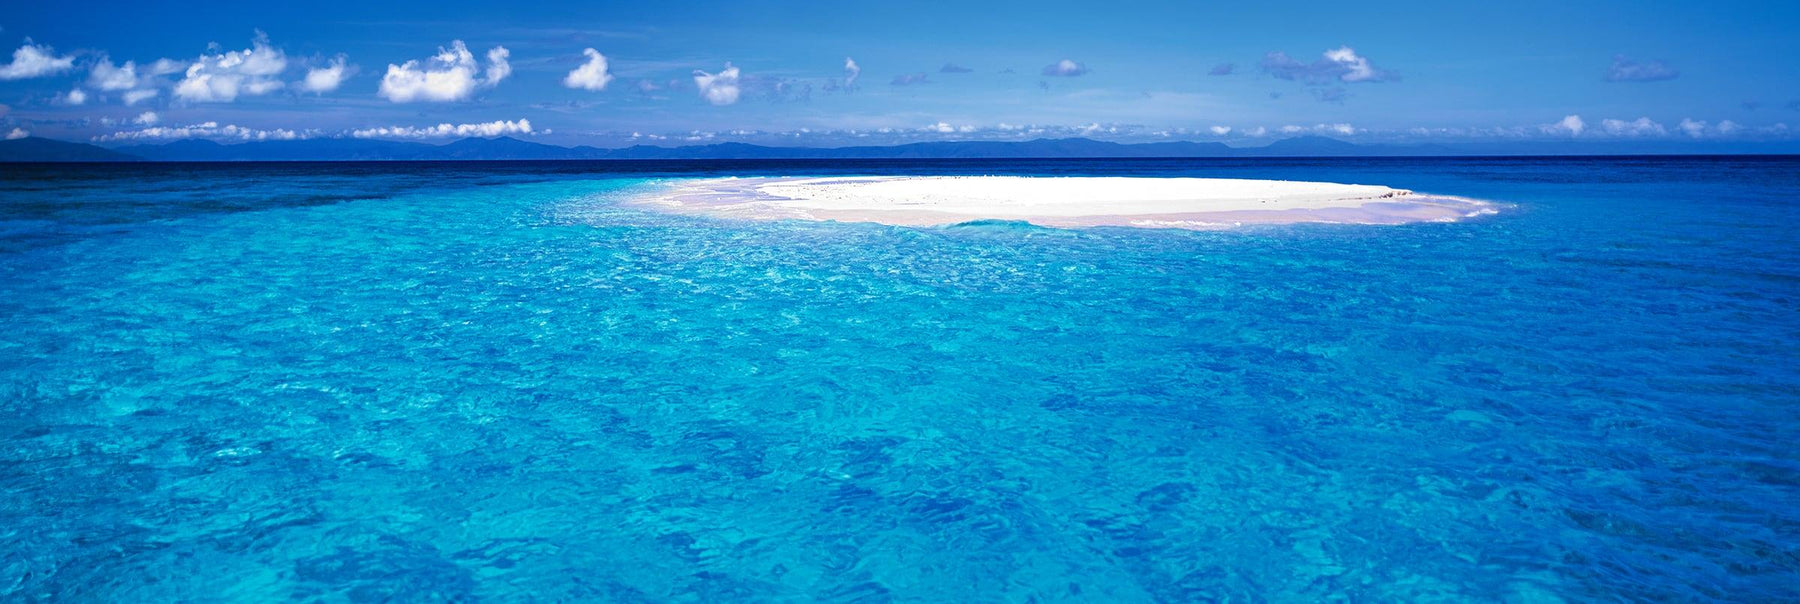 White sand of Upolu Cay surrounded by the turquoise ocean in Queensland Australia